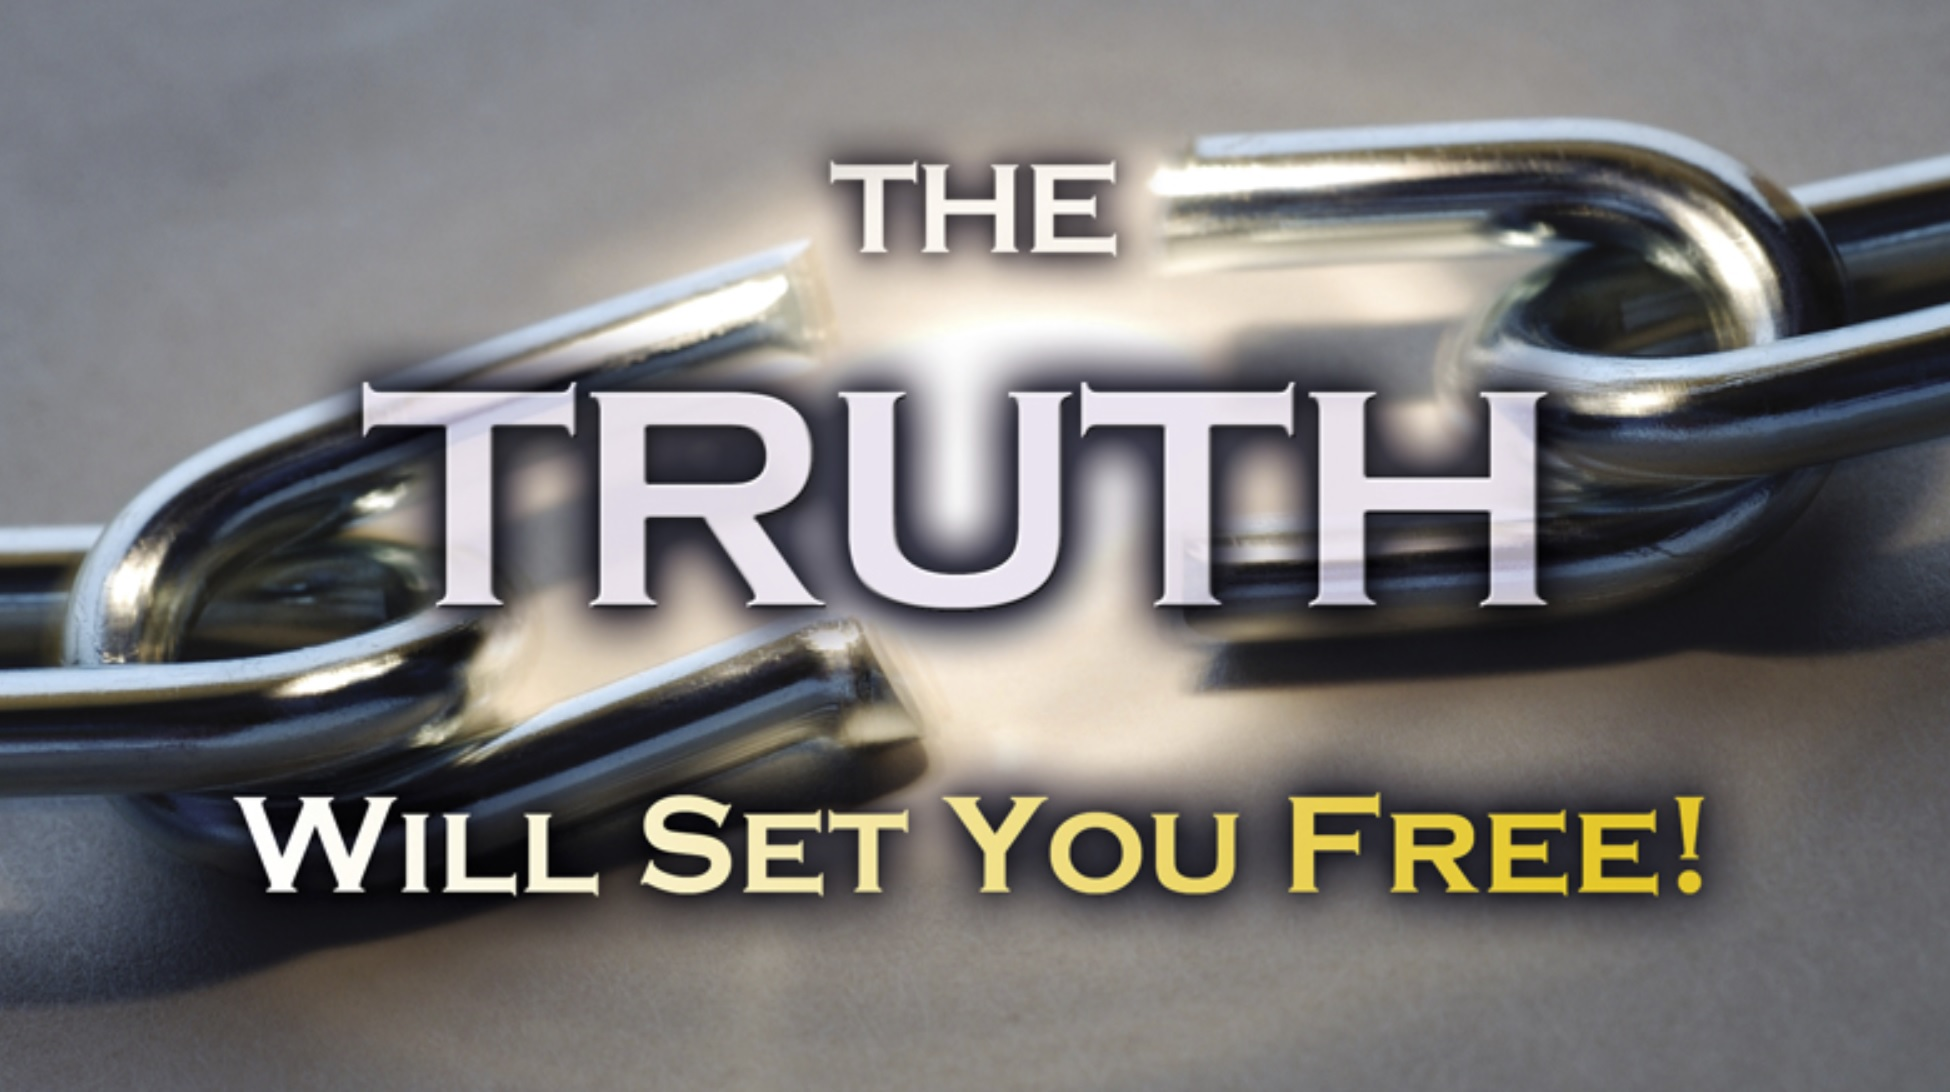 2021-09-18 The Truth Will Set You Free